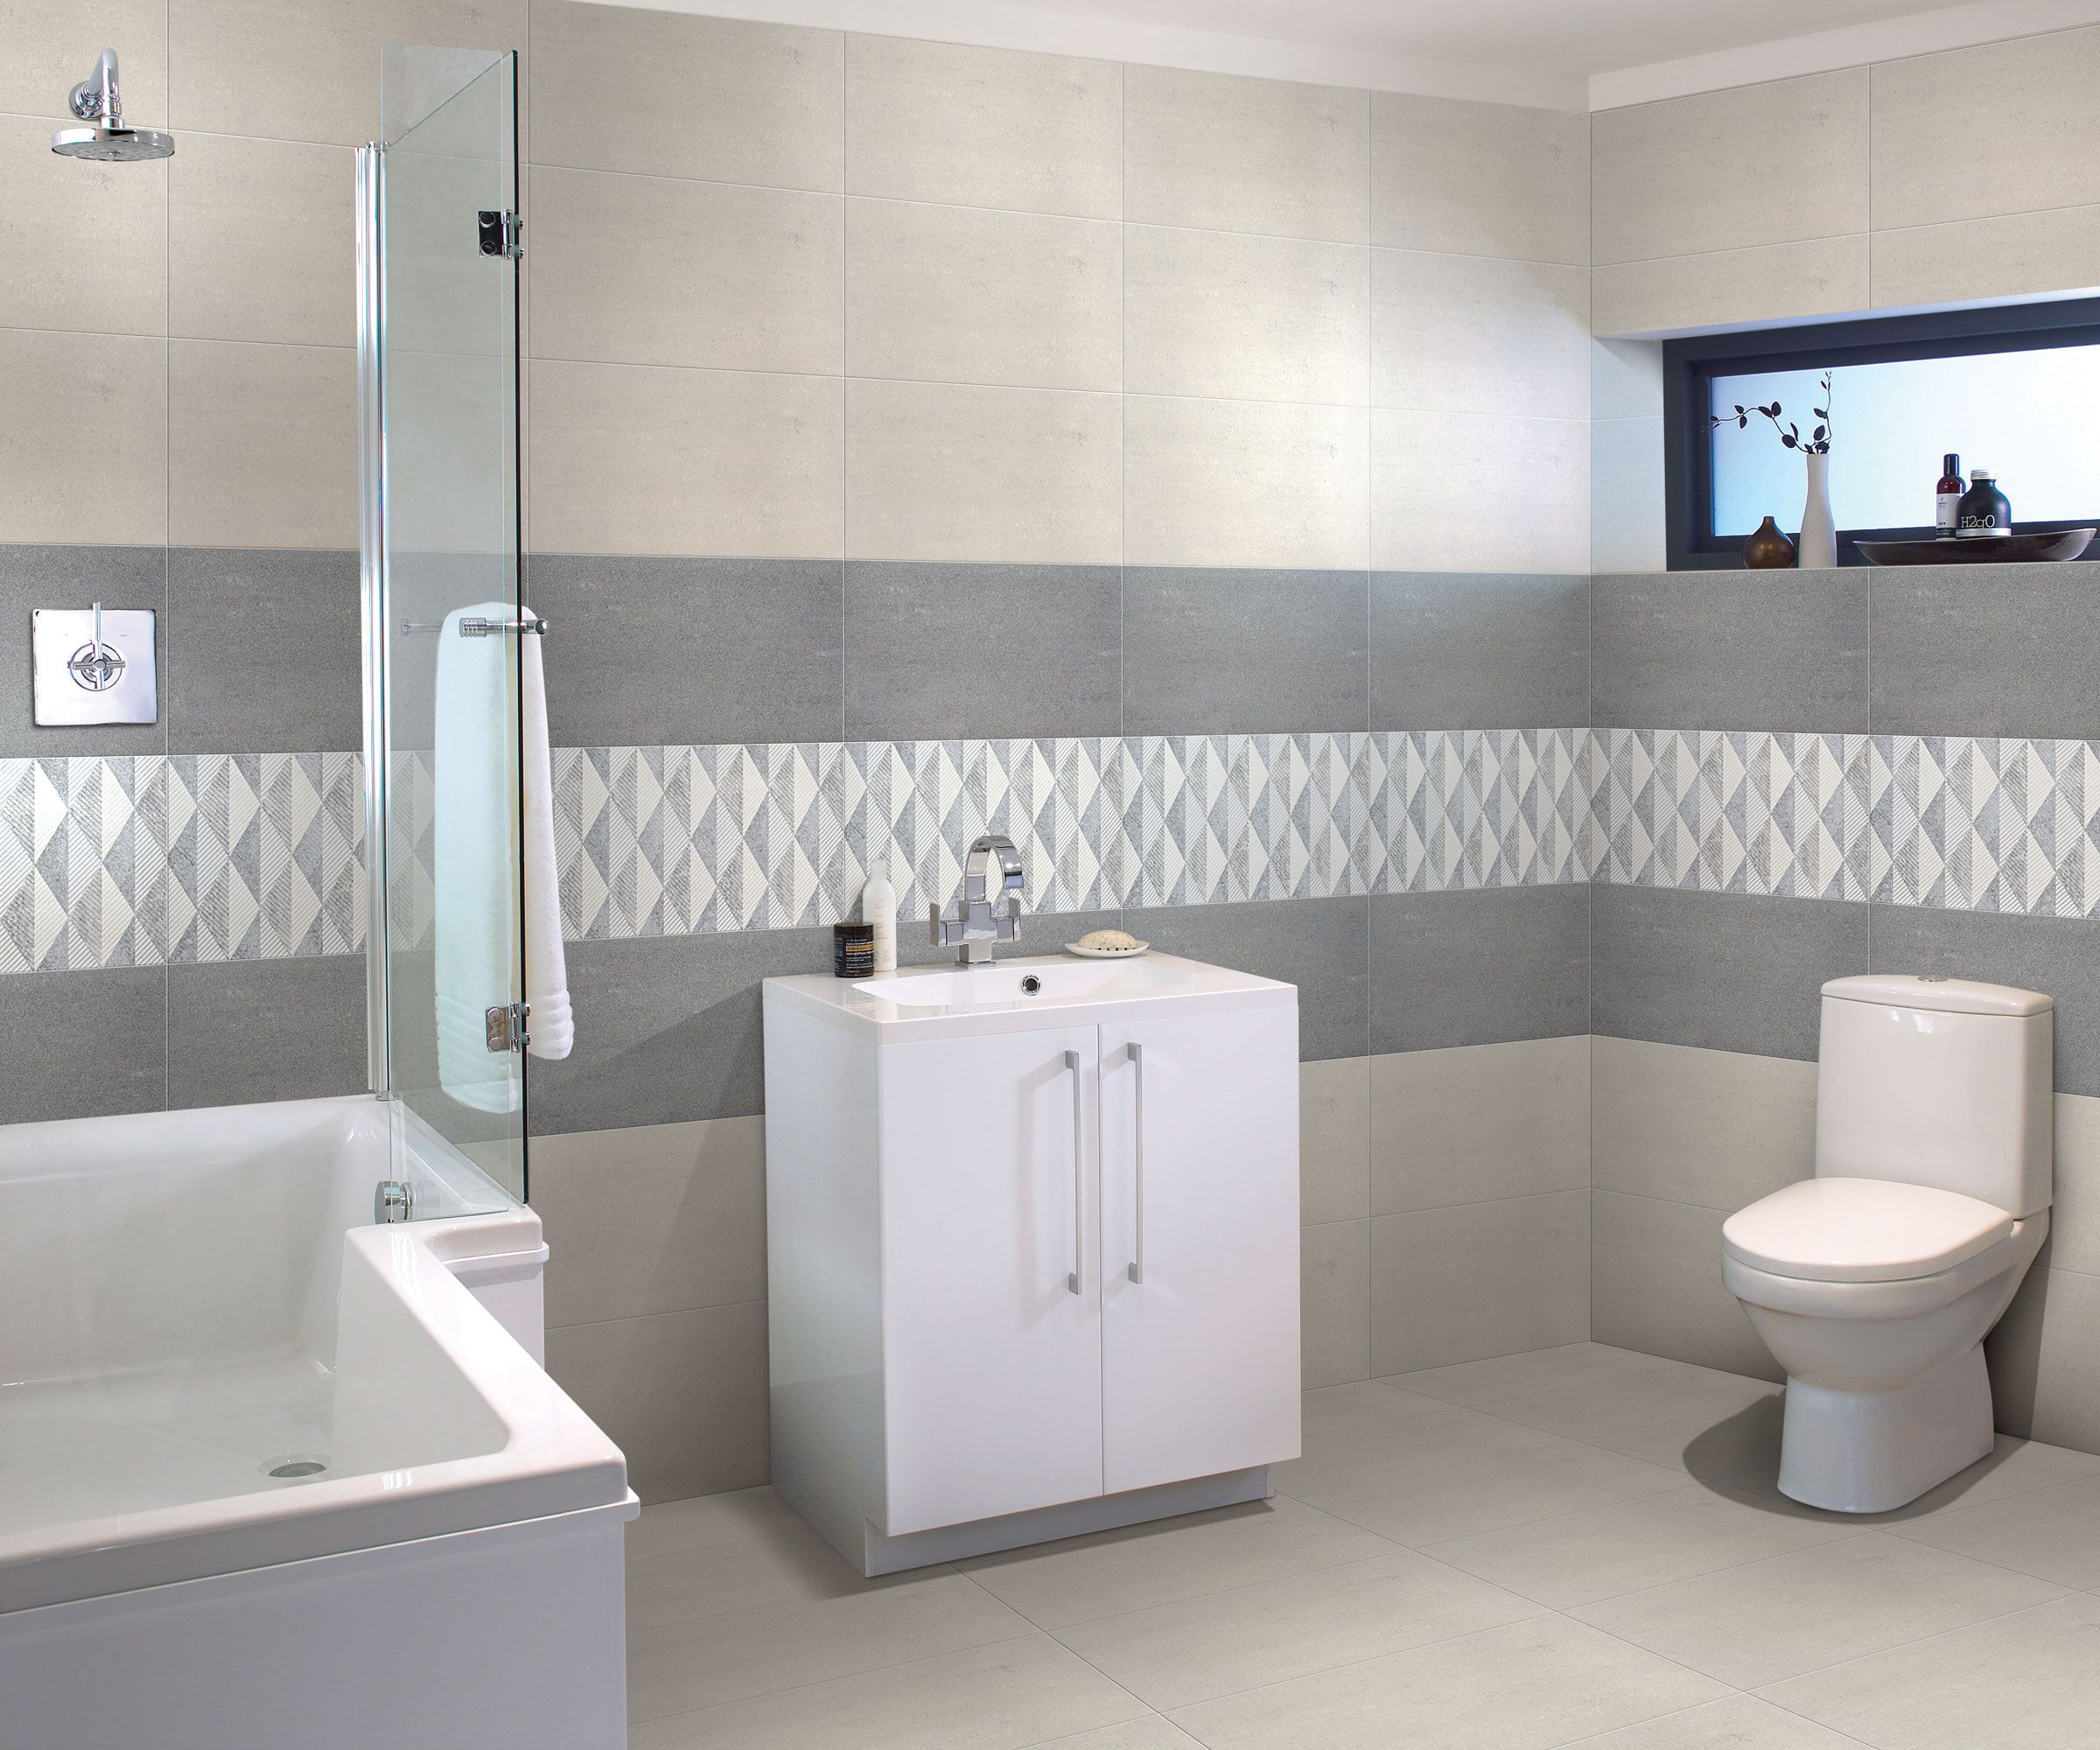 Buy Designer Floor, Wall #Tiles For #Bathroom, Bedroom